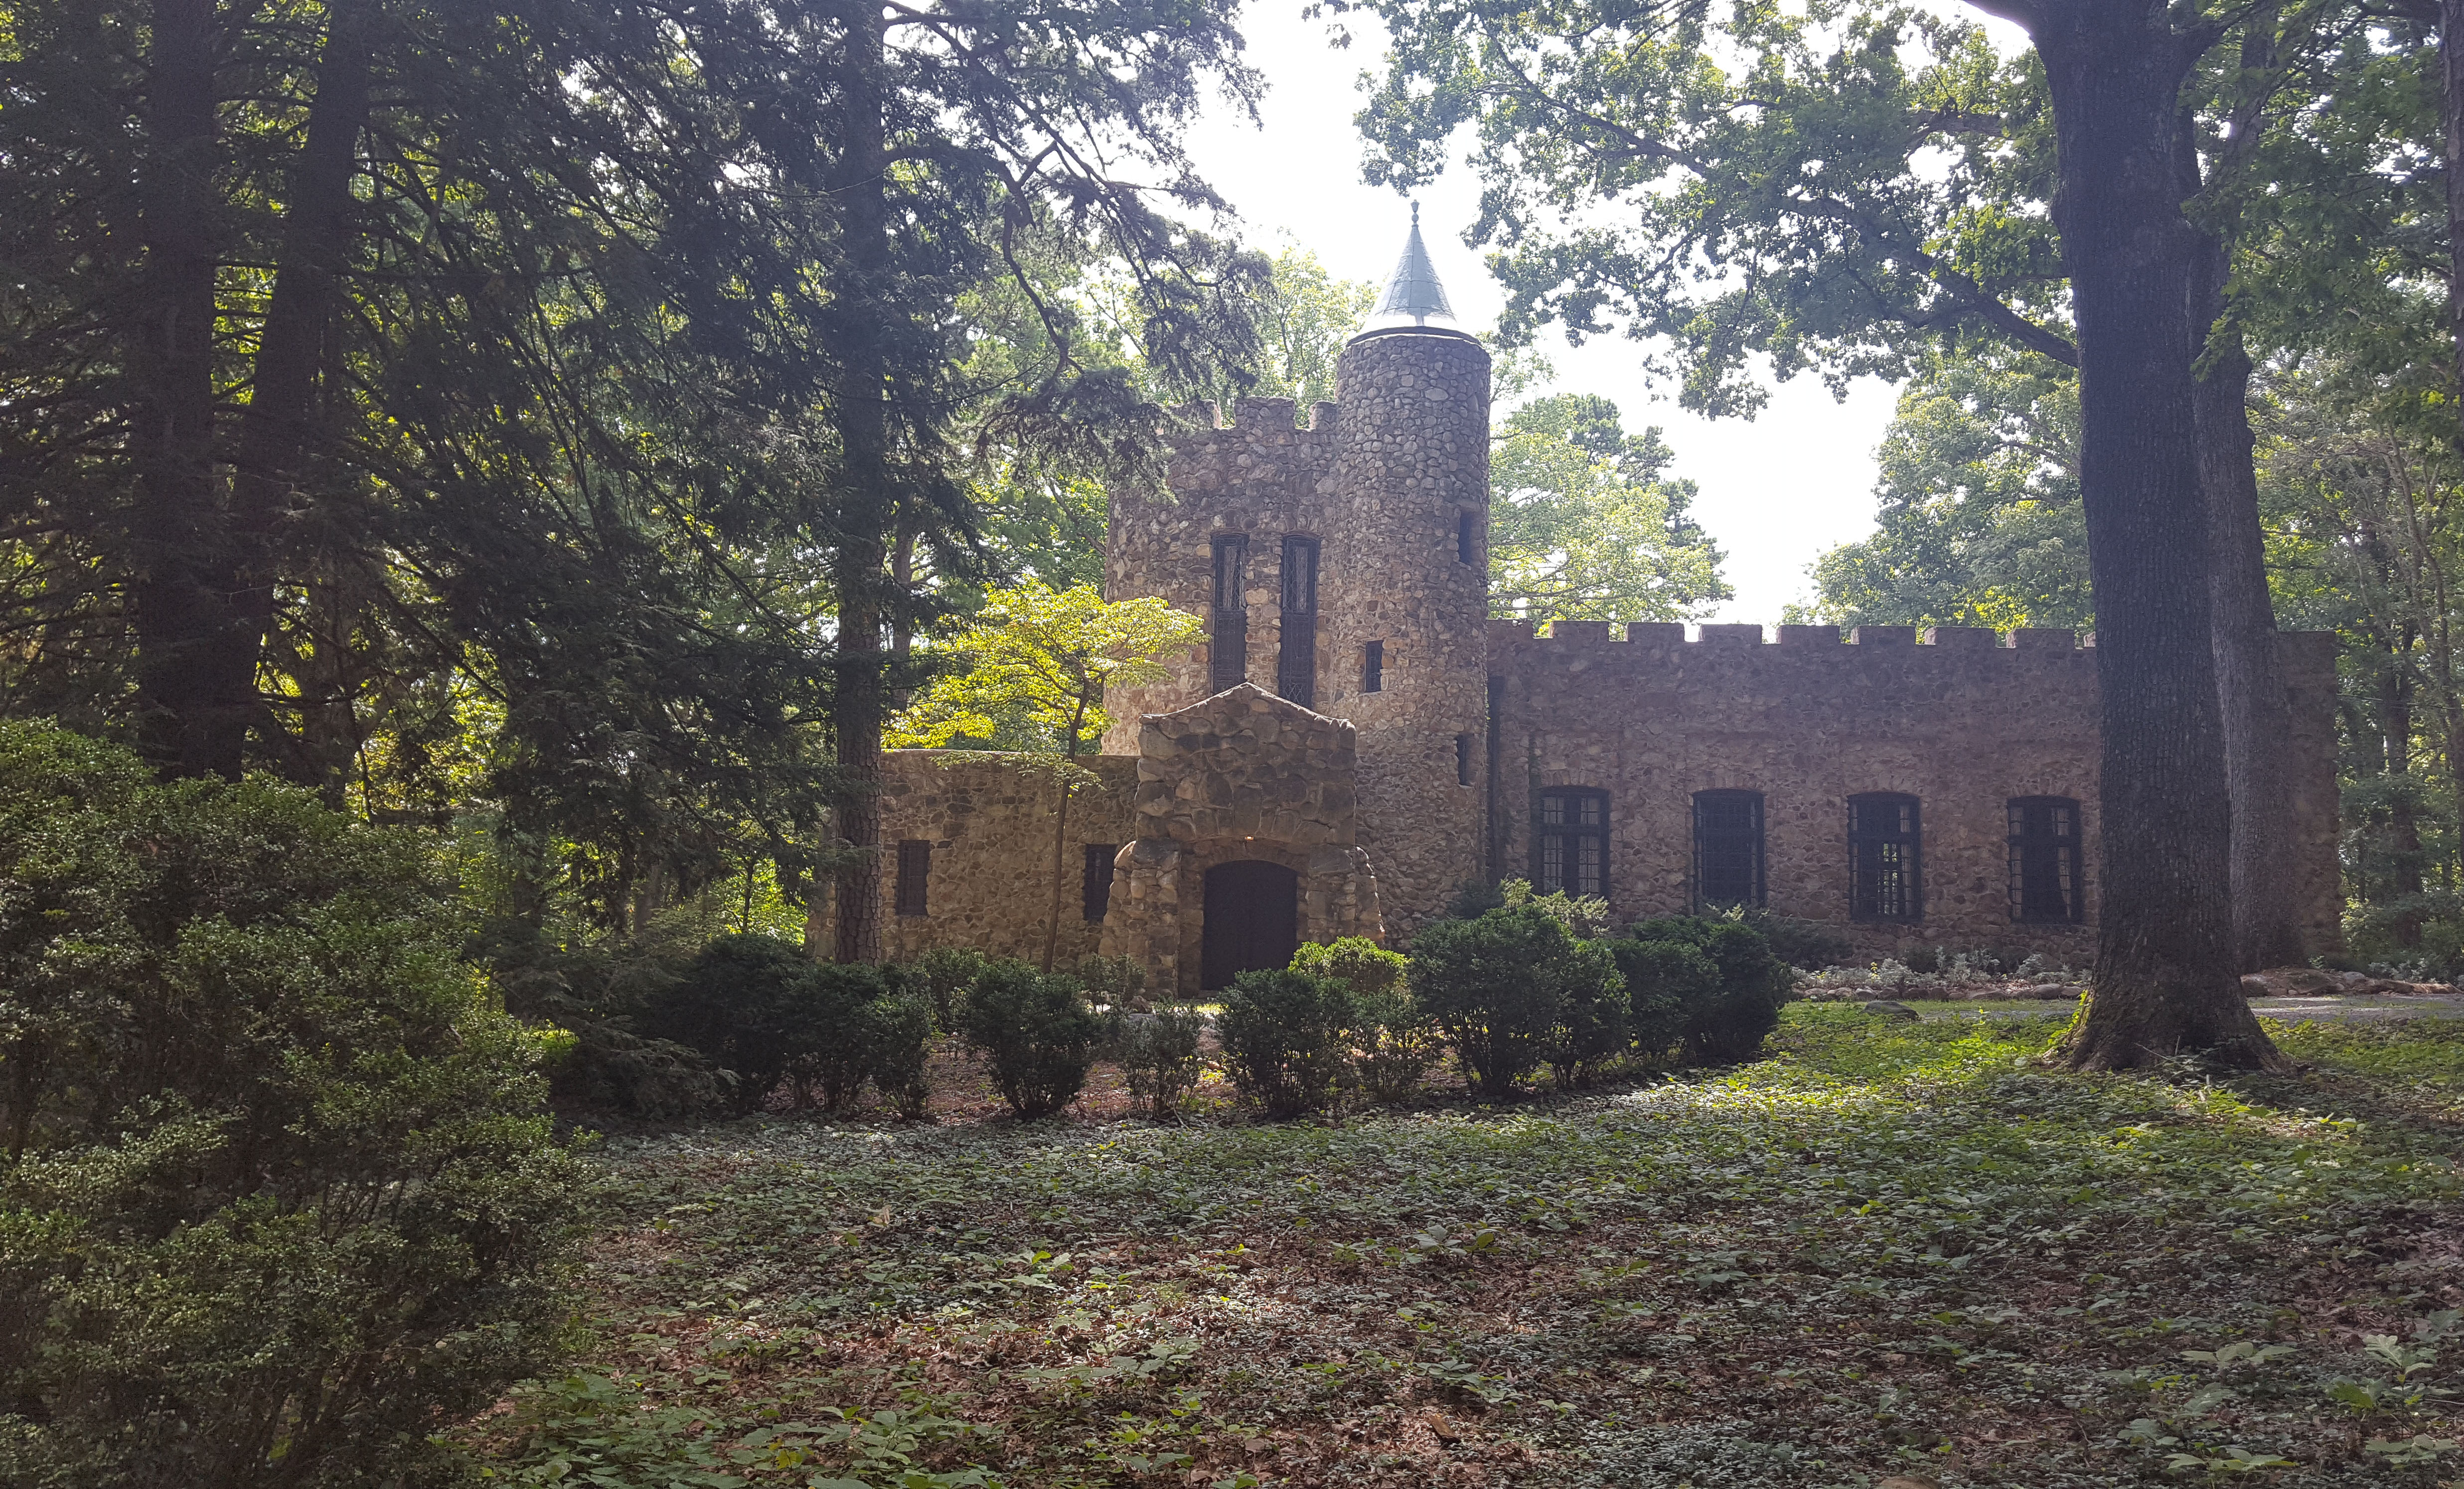 Gimghoul Castle in at UNC Chapel Hill